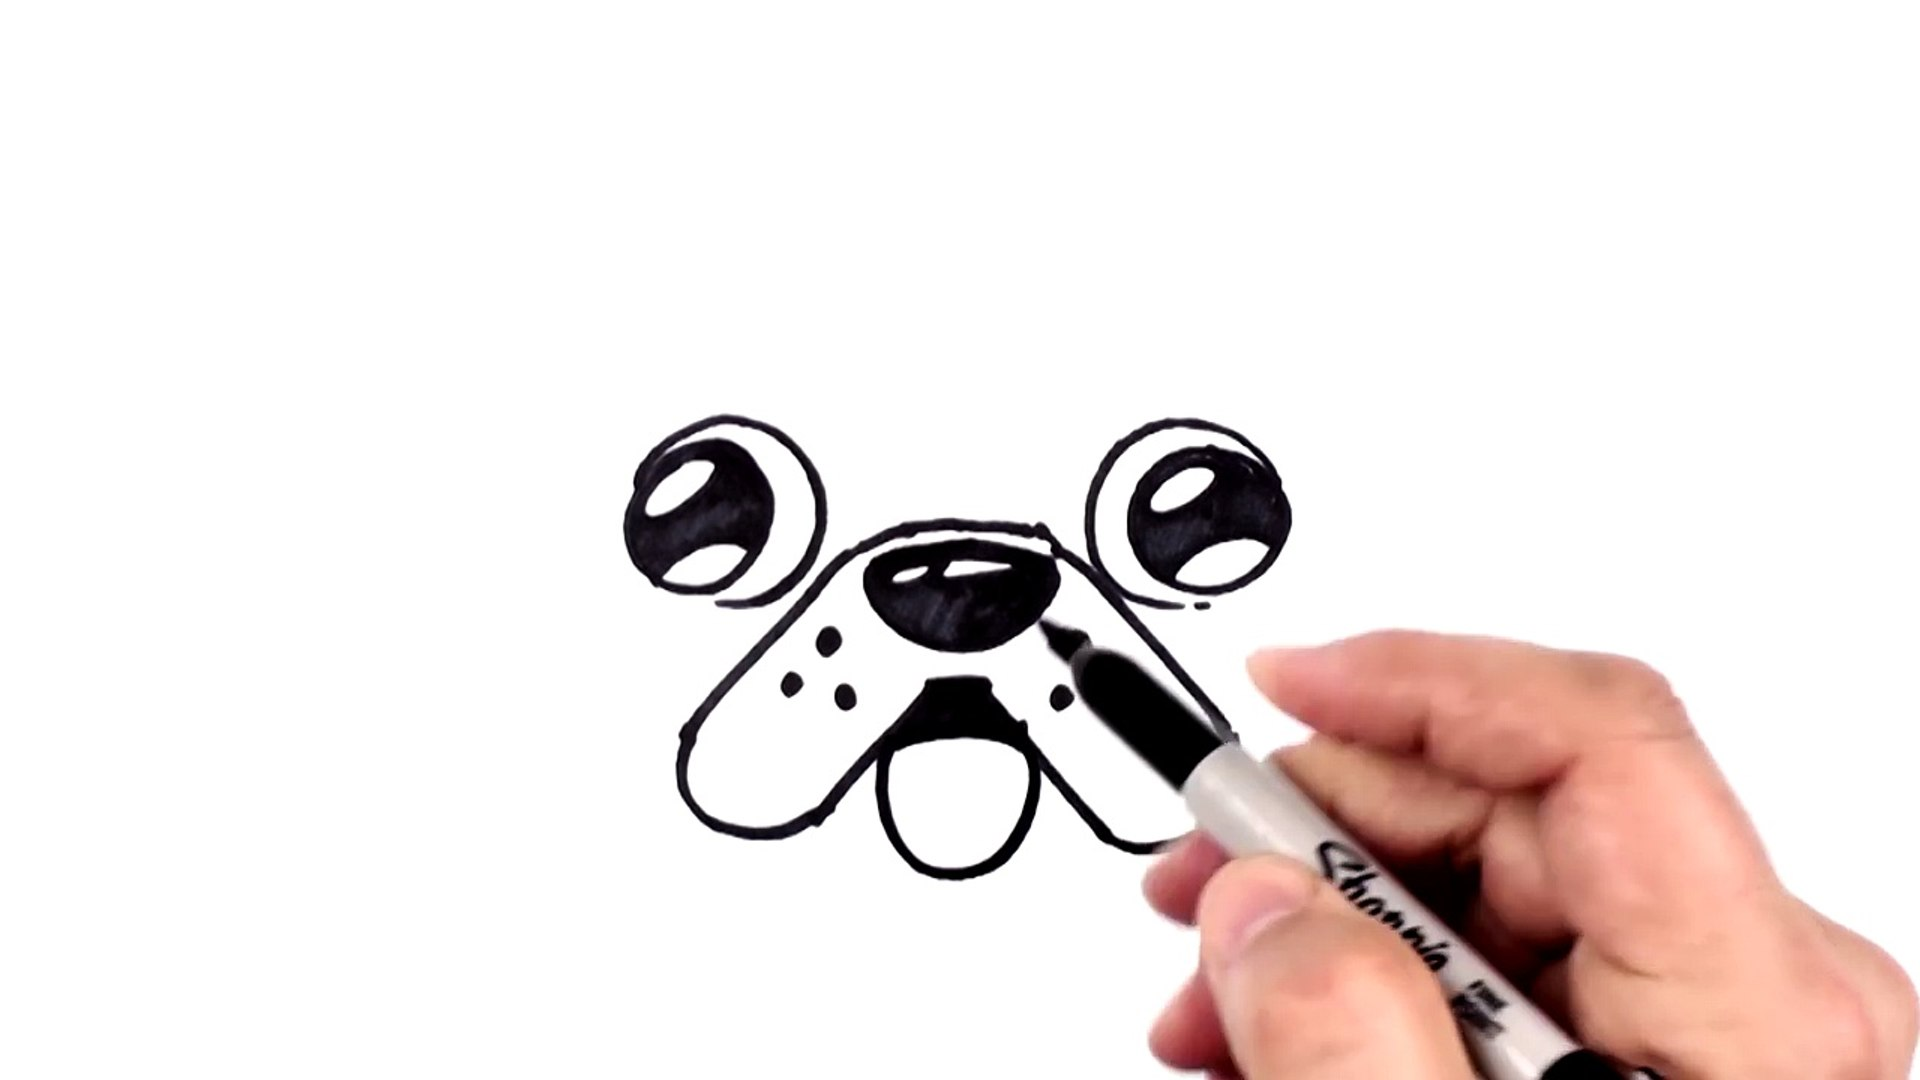 How To Draw A Cute Dog Emoji Pug For Beginners Step By Step Bp Video Dailymotion